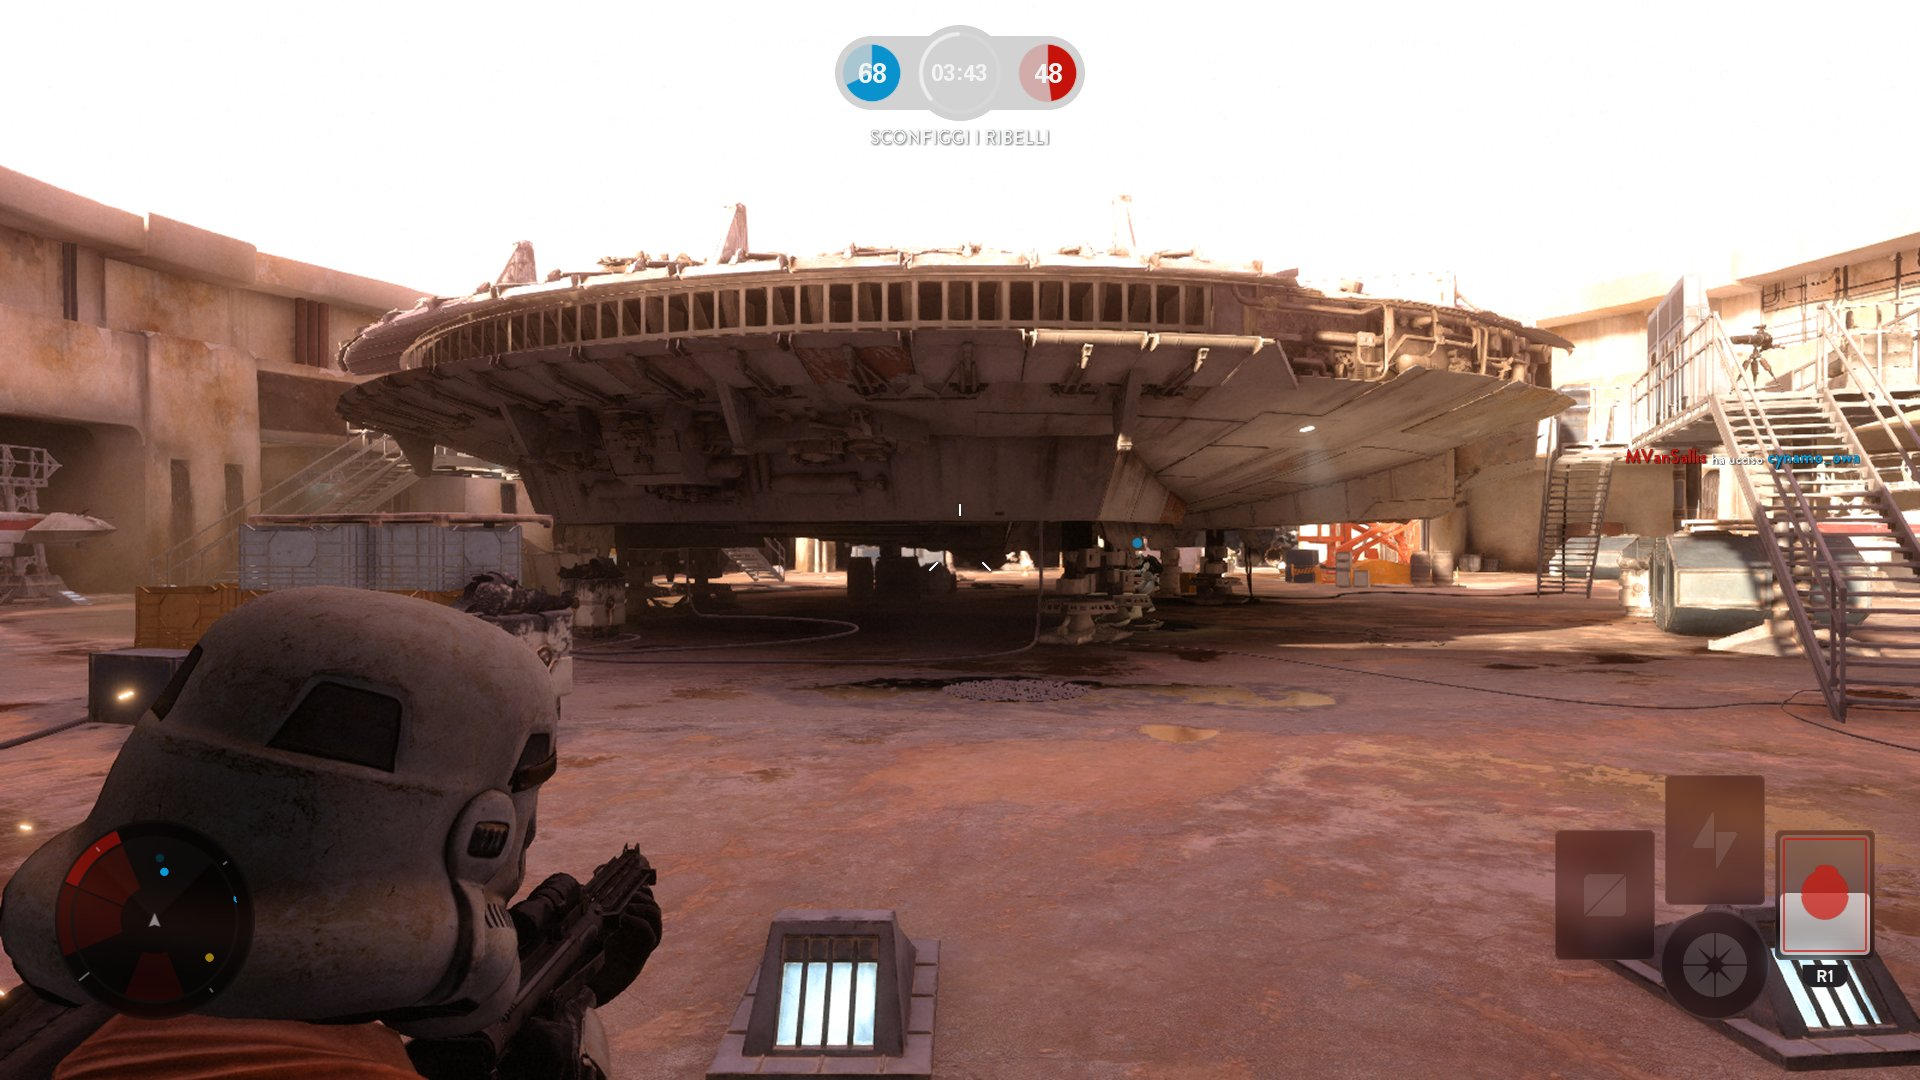 Star Wars: Battlefront - Millennium Falcon